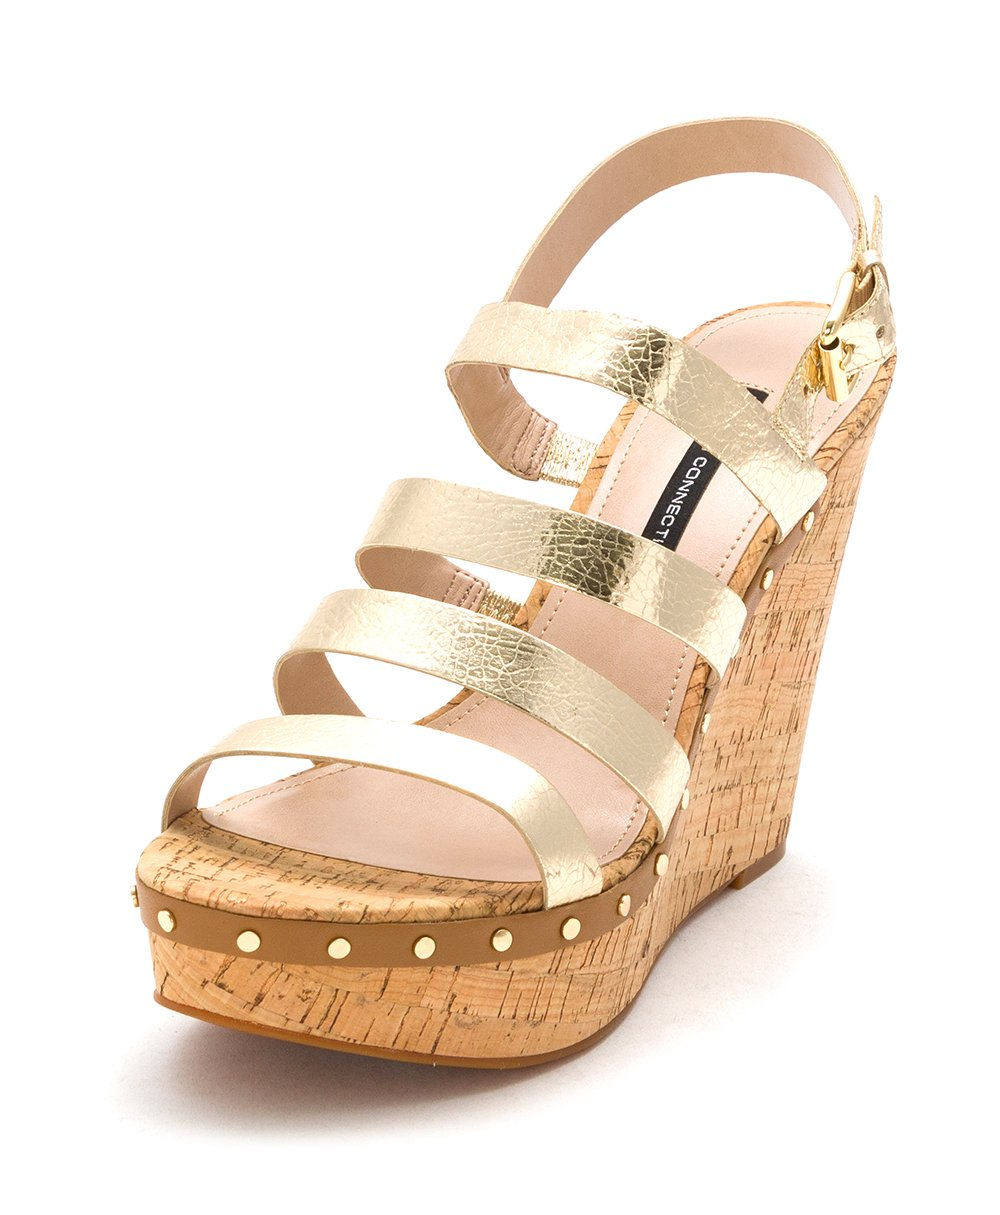 French Connection Women's Dion Wedge Sandal B01E8QN1C0 11 B(M) US|Lt Gold